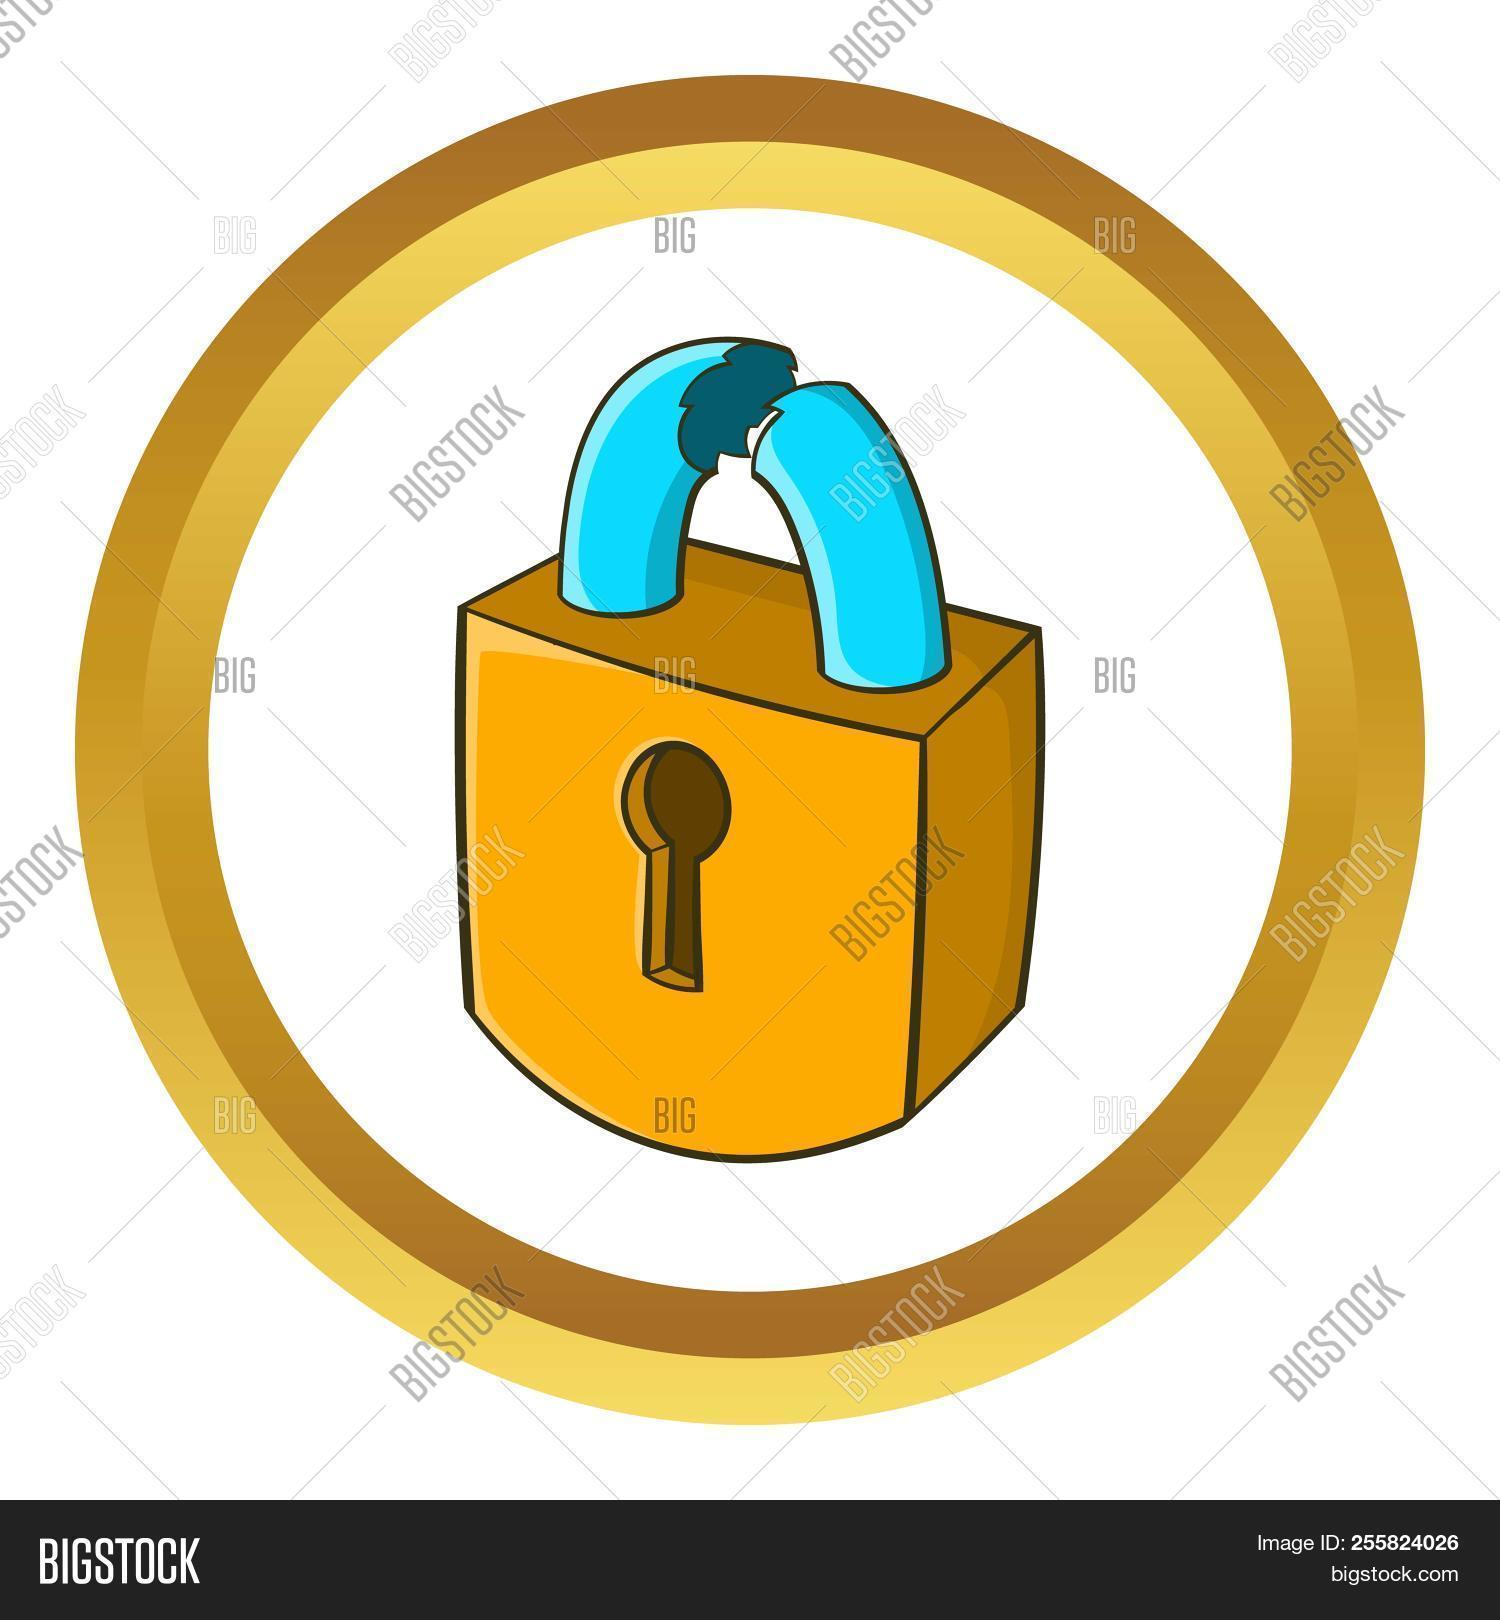 Padlock Which Is Broken Icon In Golden Circle Cartoon Style Isolated On White Background 255824026 Image Stock Photo